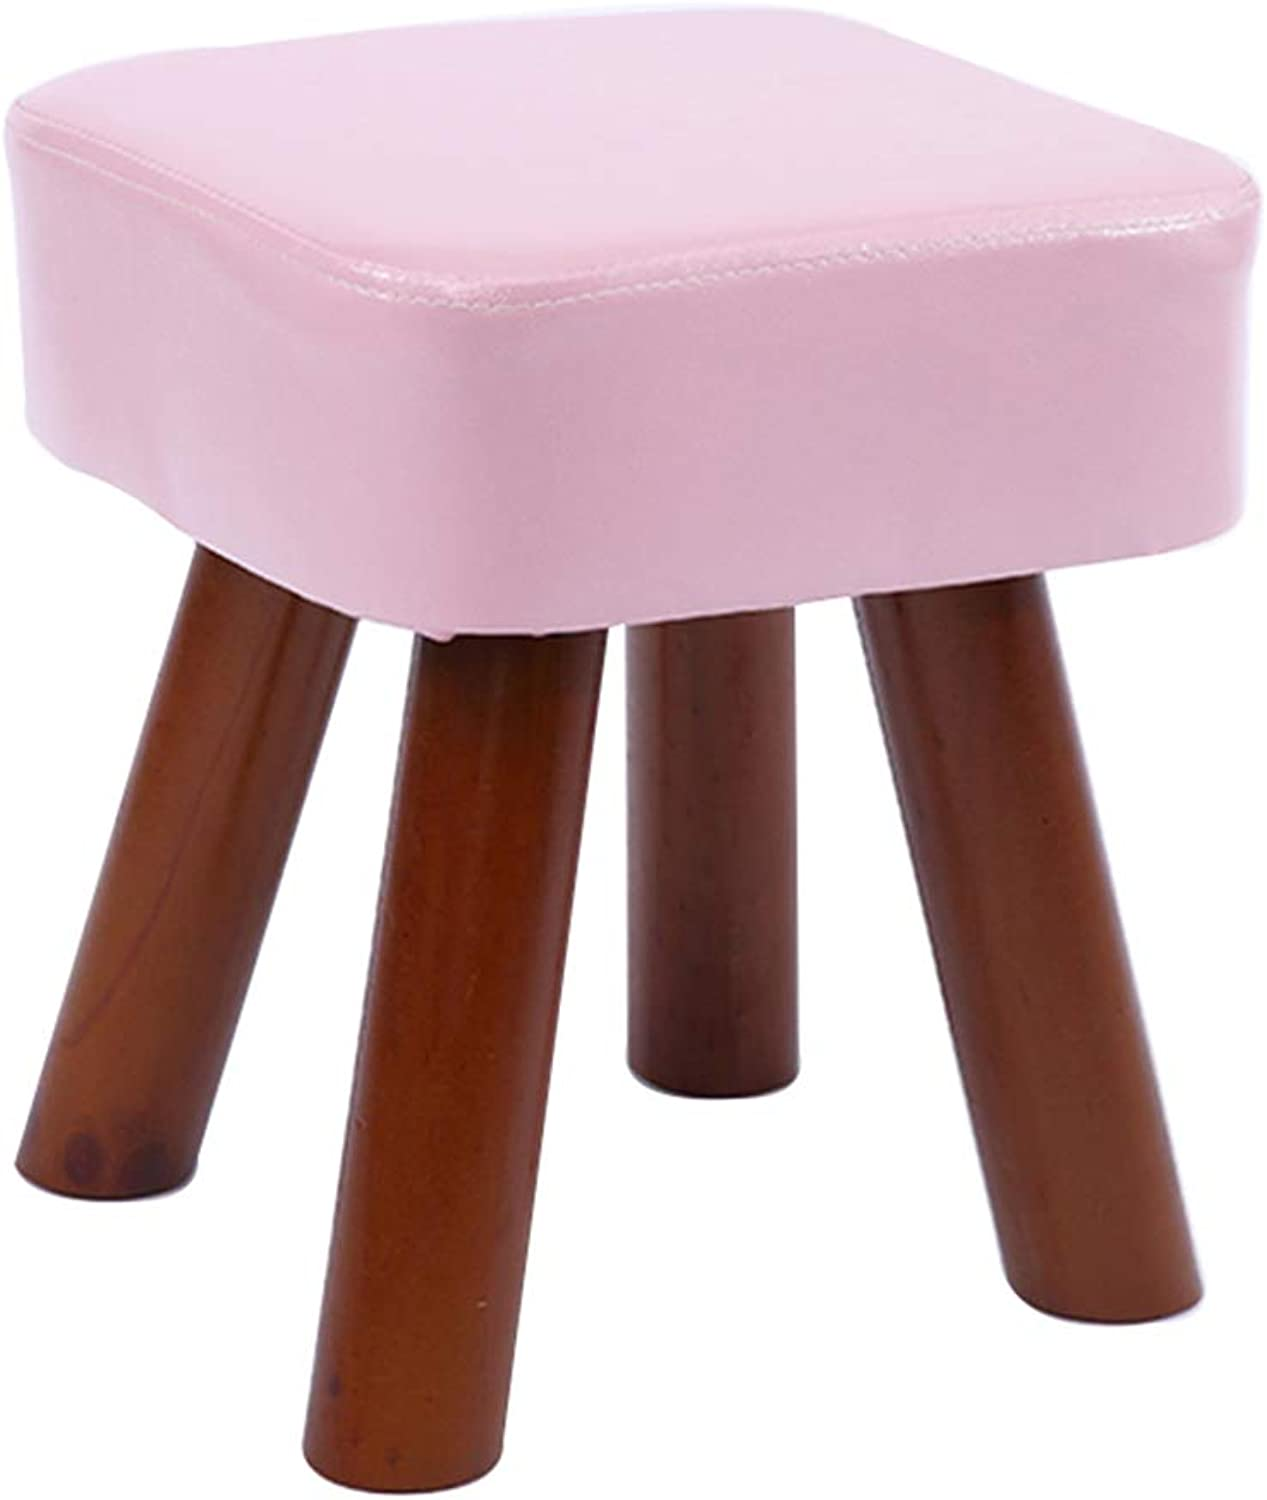 Household Step Stool,Anti-Slip Footstool,Rest Stool with Wooden Legs,Exquisite Appearance Compact Size Easy to Store,Great for Kitchen, Bathroom, Bedroom, Kids or Adults,Pink